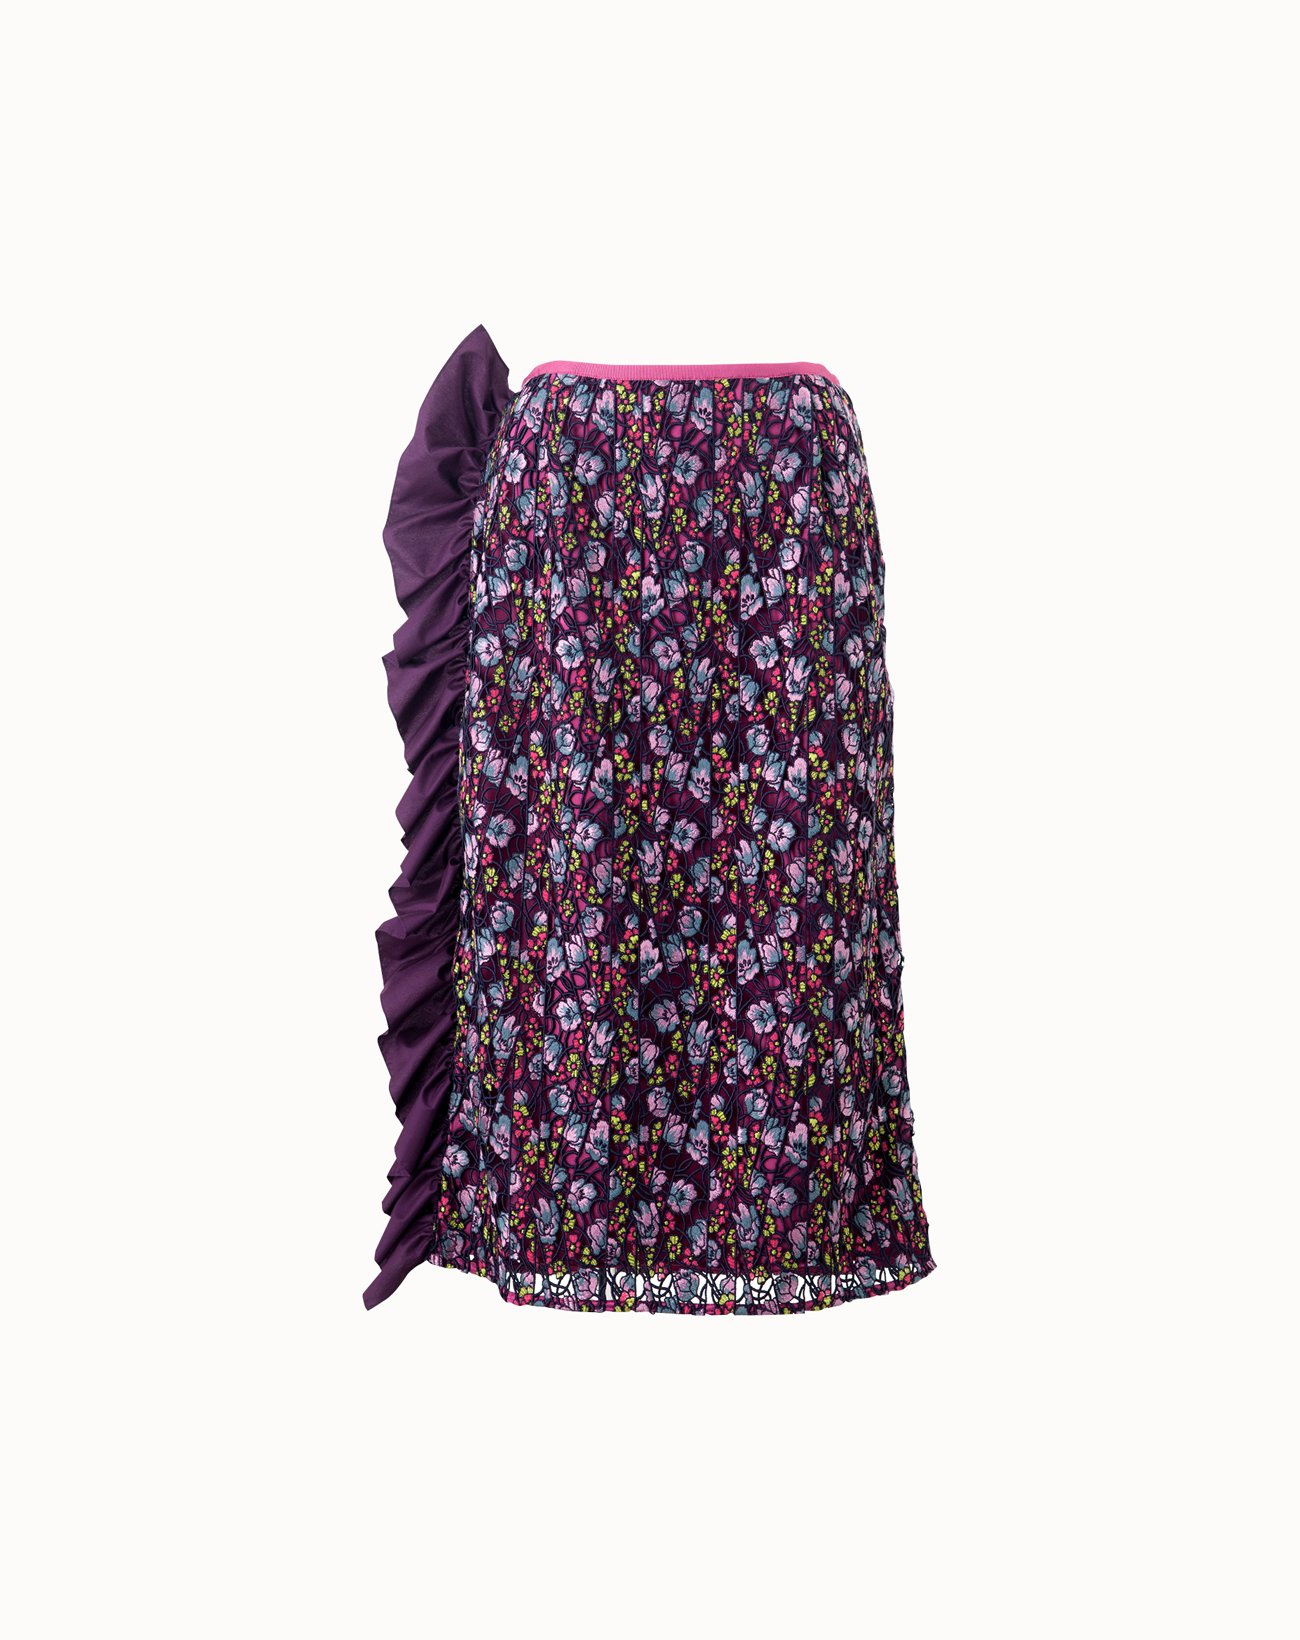 Couture Lace Skirt with Frills  - Purple